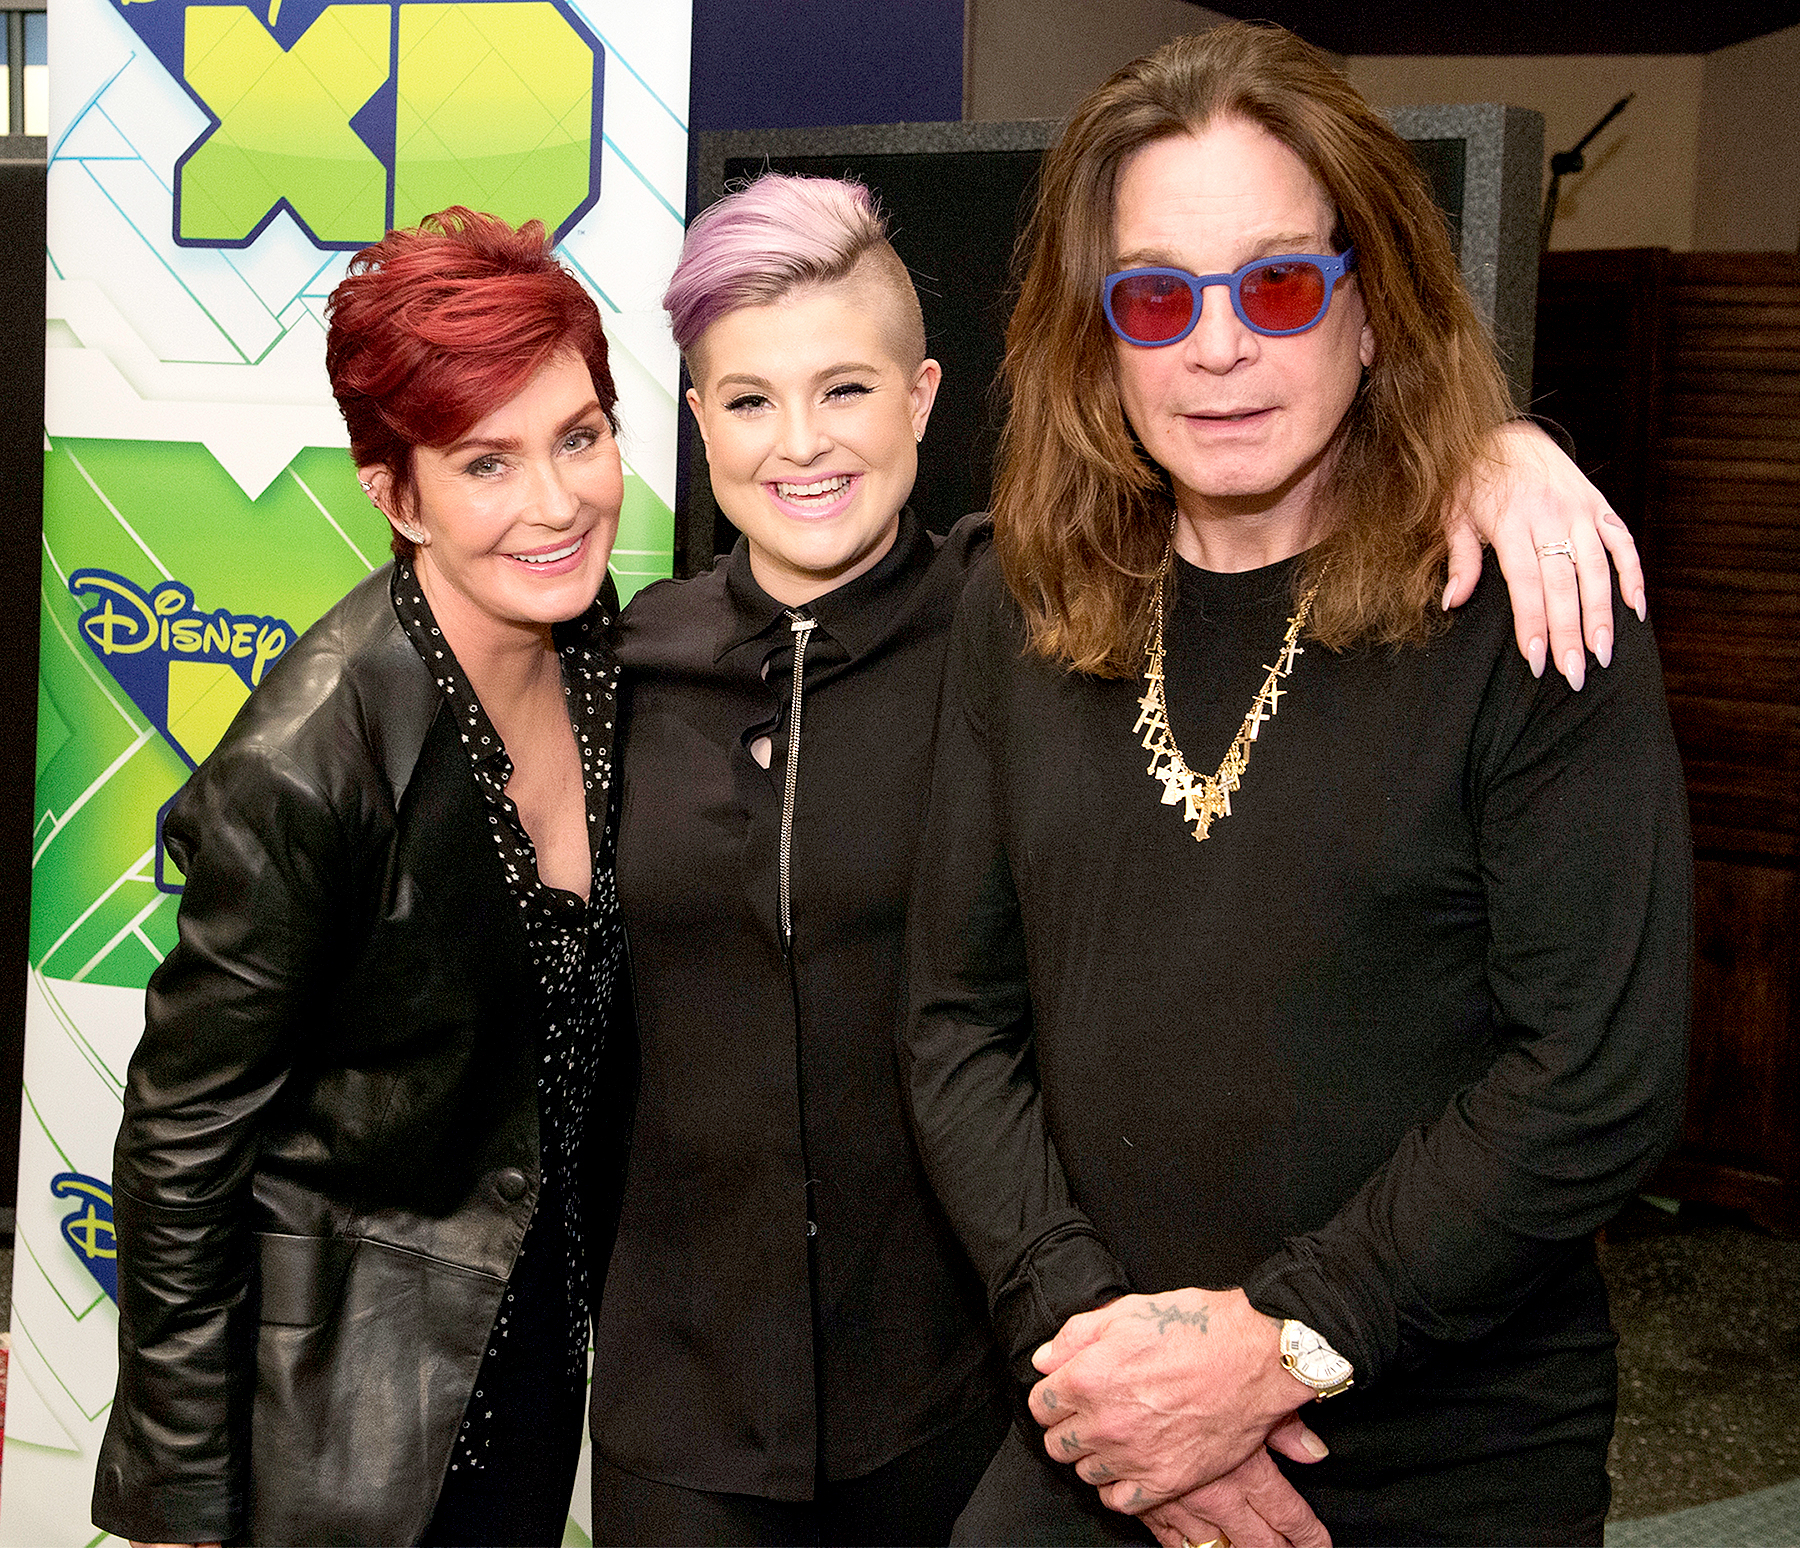 Sharon, Kelly, and Ozzy Osbourne